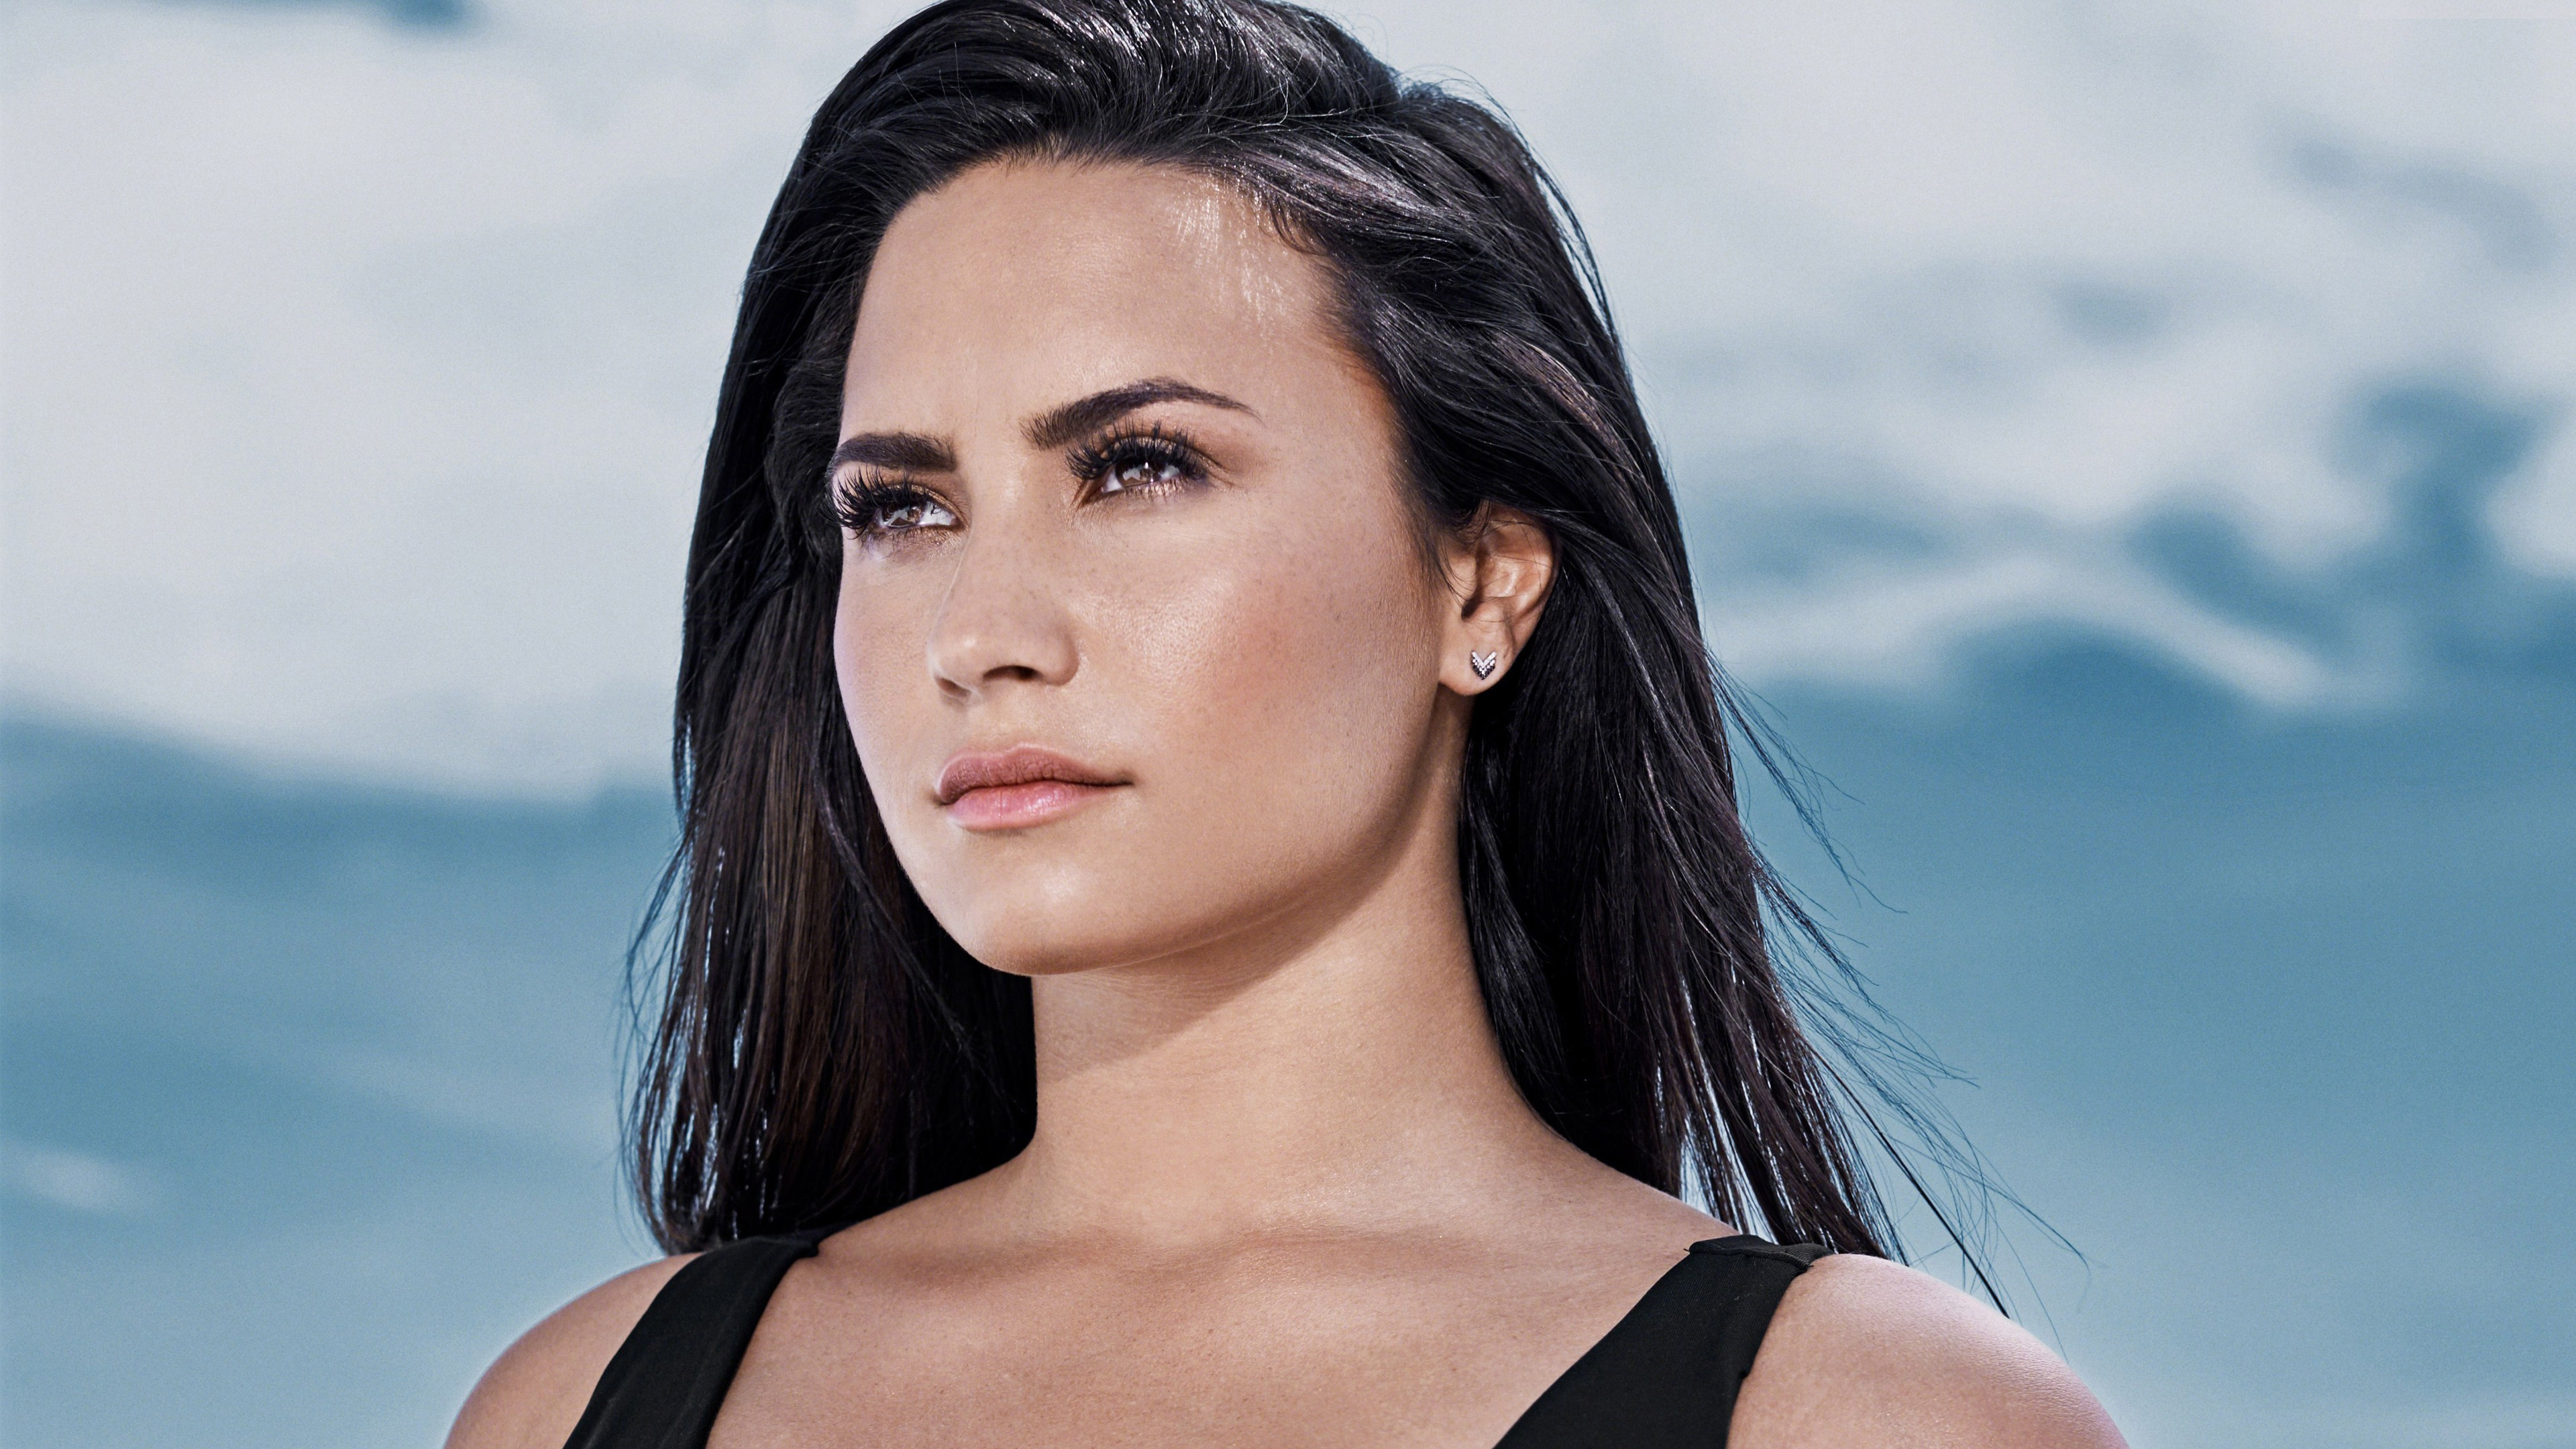 Demi Lovato 4k Wallpaper 3840x2160